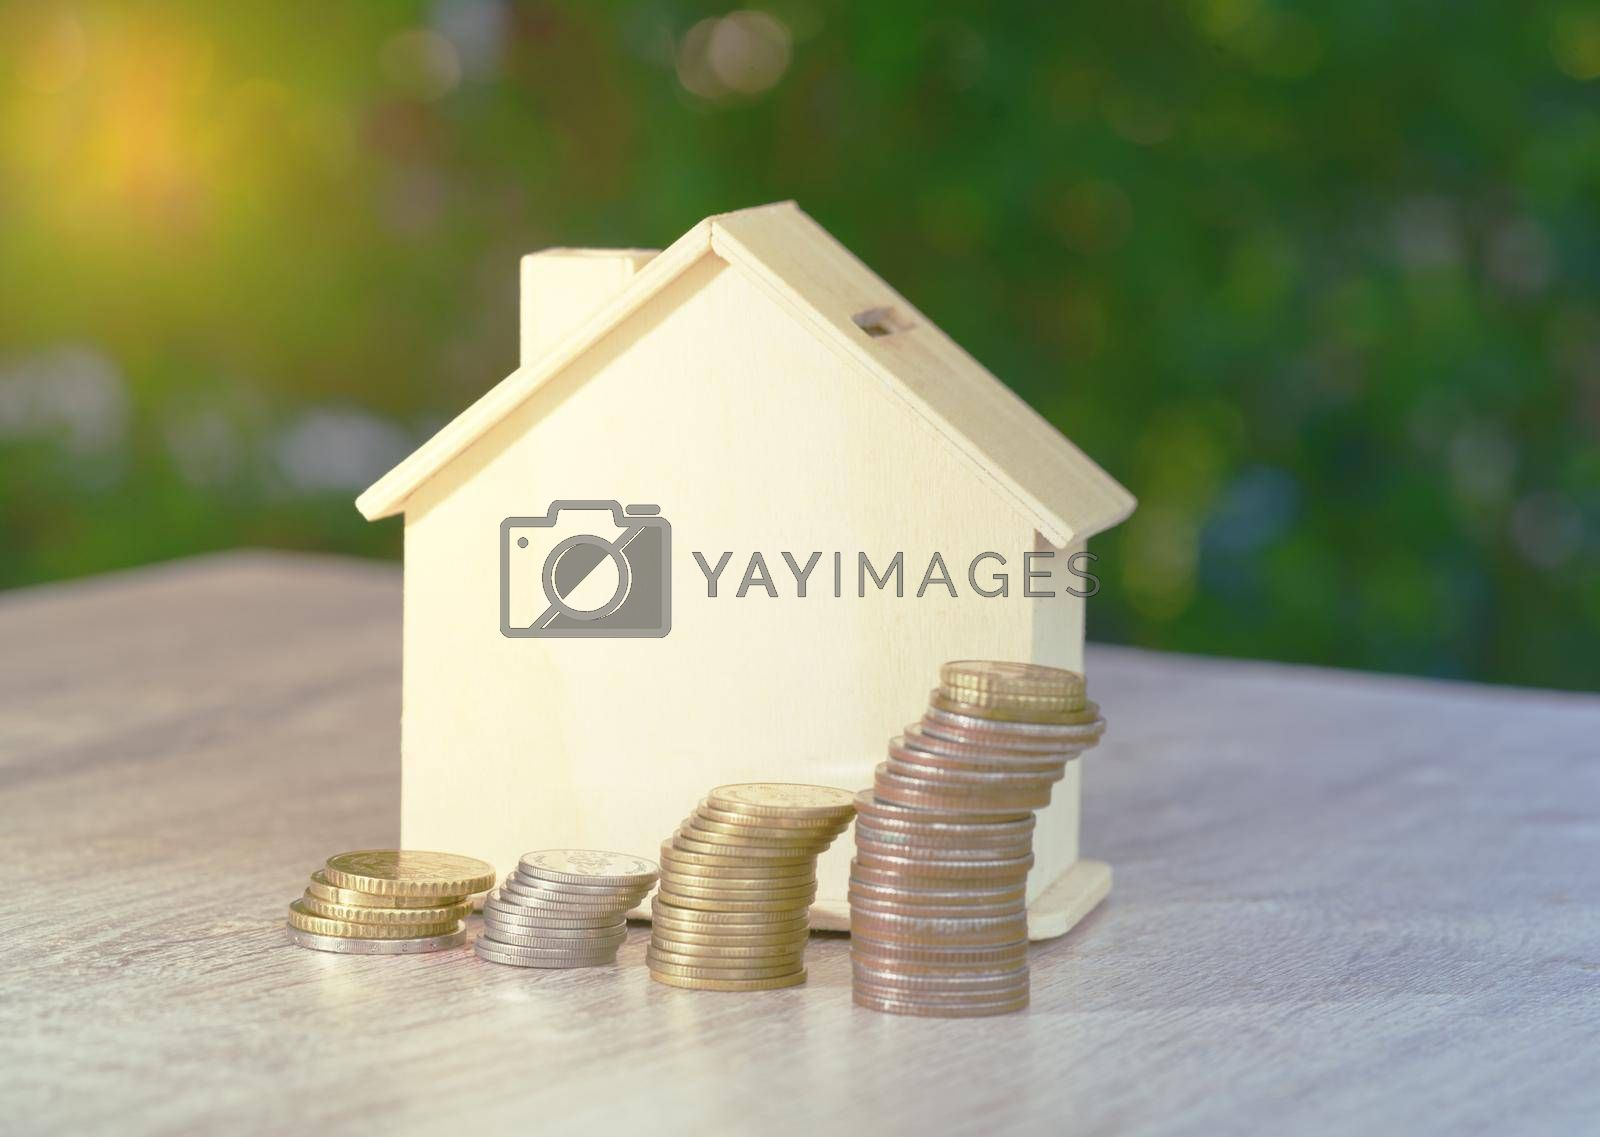 Royalty free image of Abstract stackable coin office desk with model house Real Estate Investment Value Auction Ideas Financial and Economic Investment Wealth. by noppha80